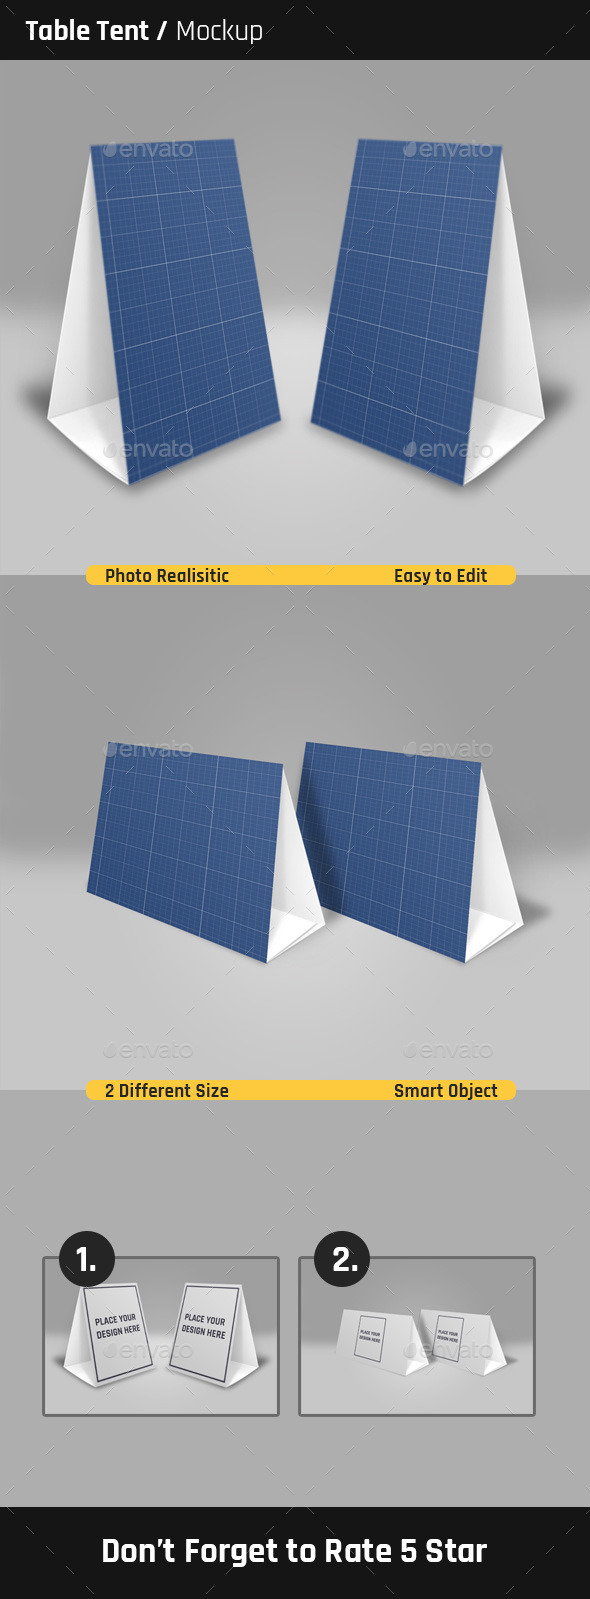 Table Tent MockUp By MIZARD GraphicRiver - Table tent size